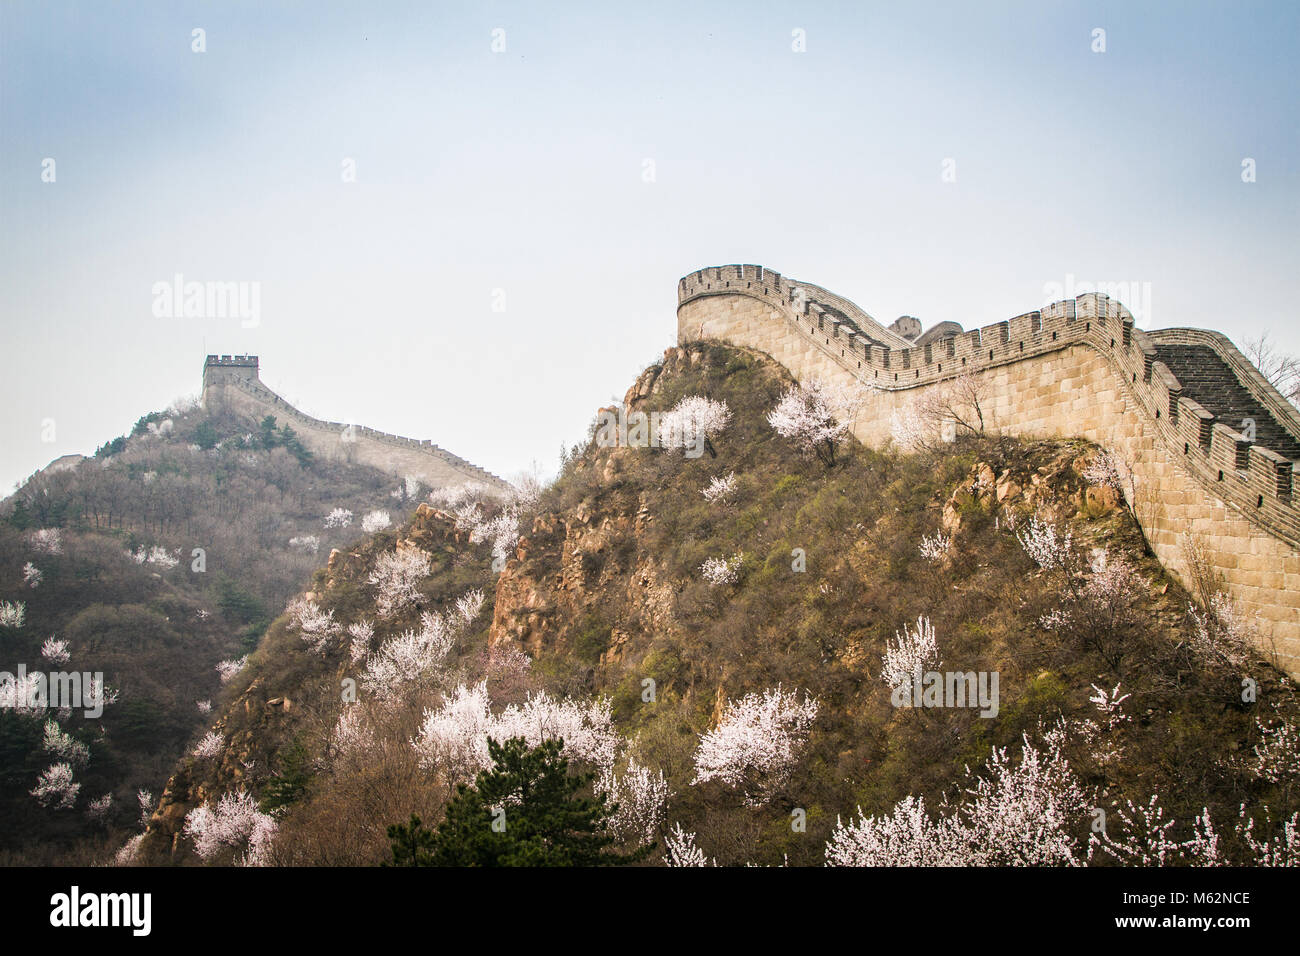 Great Wall of China, the Badaling section Stock Photo